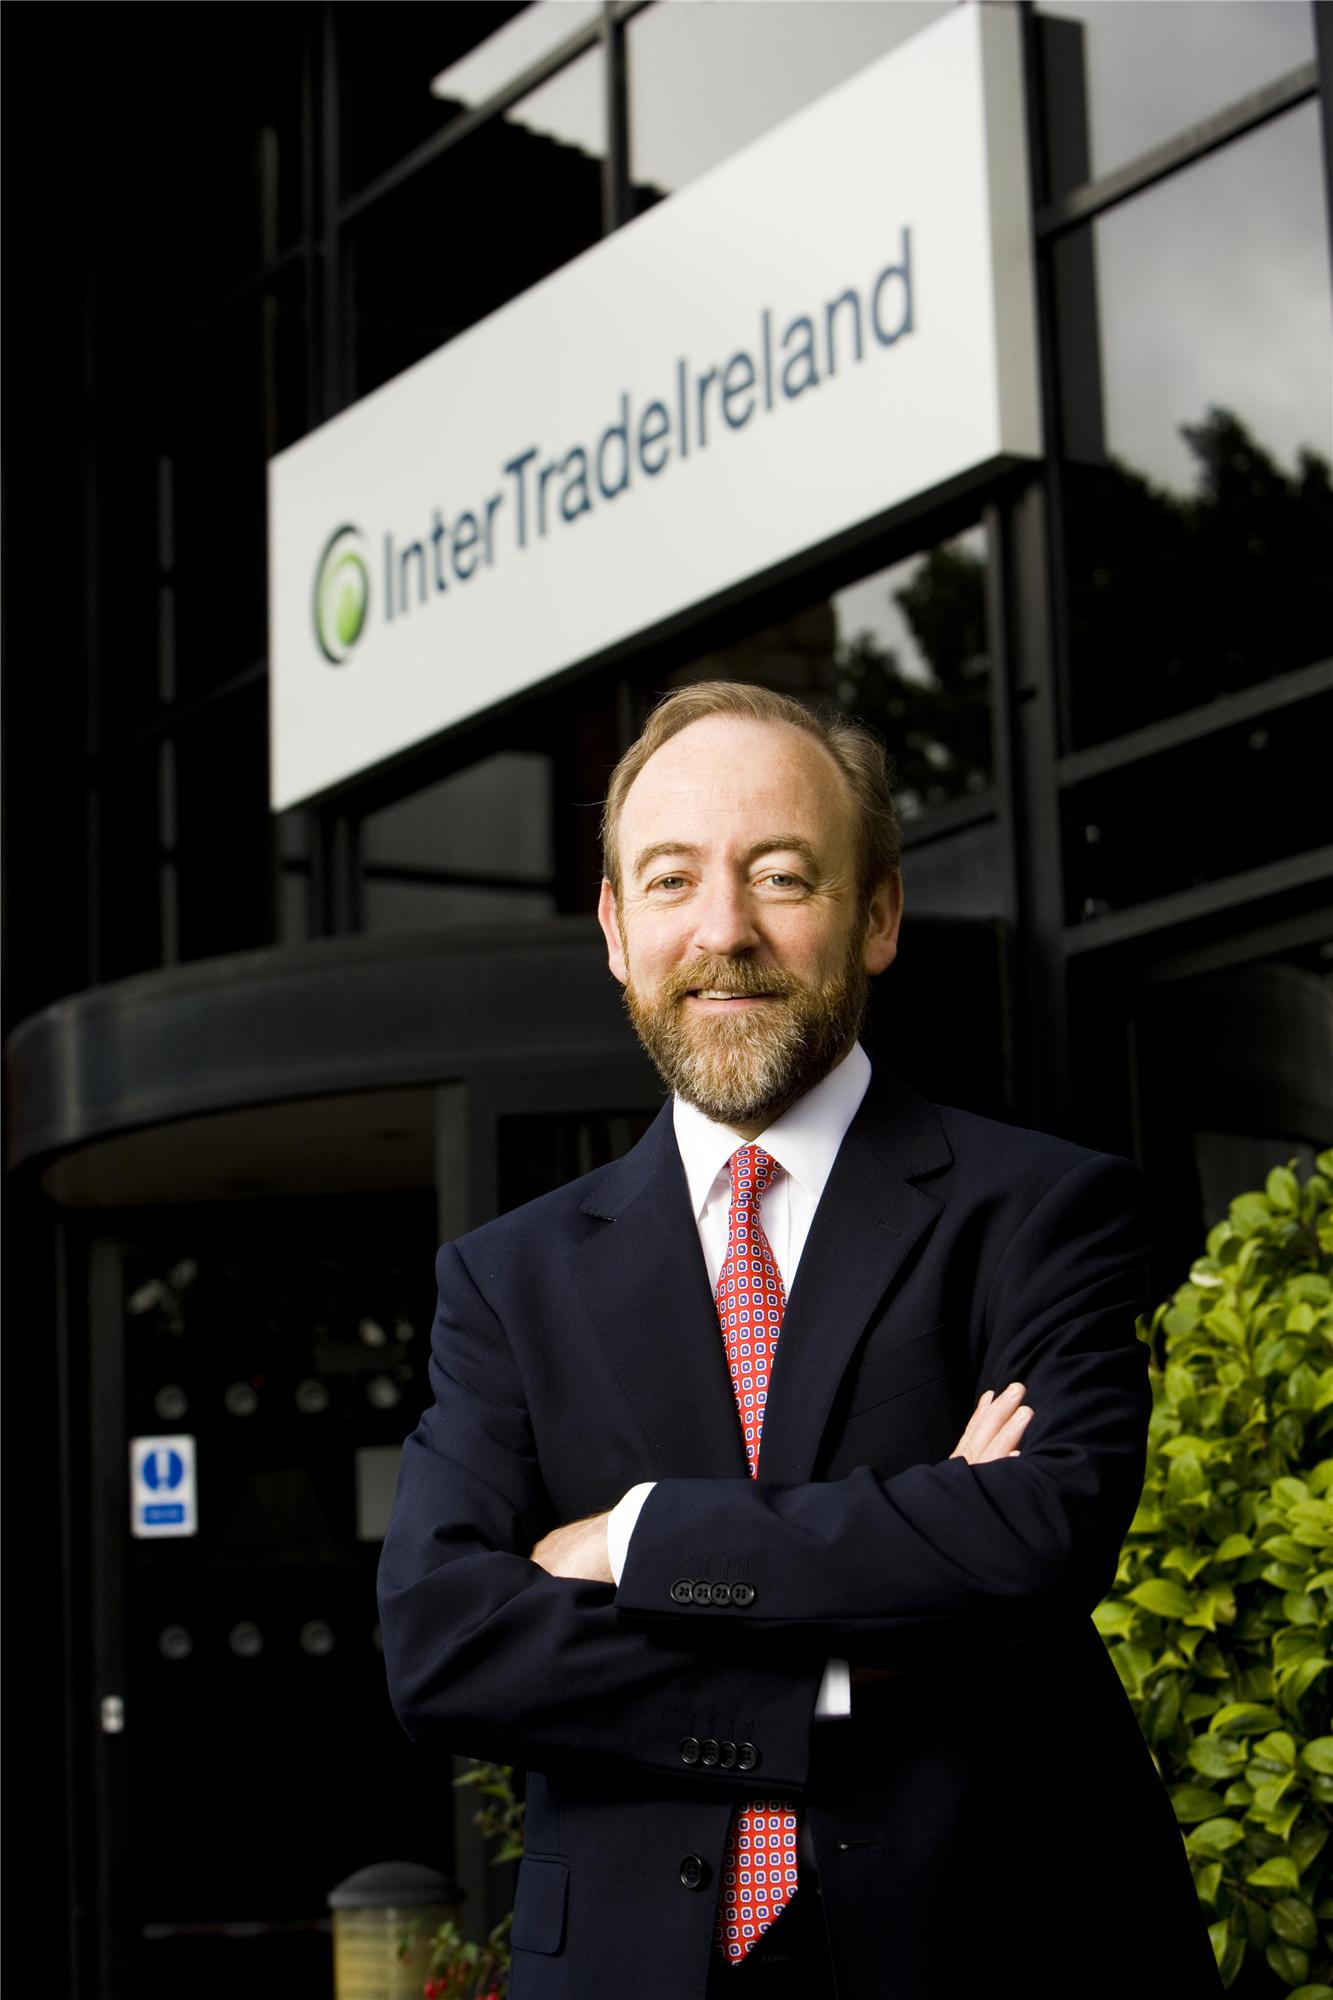 intertrade-ireland-ceo-all-ireland-business-summit